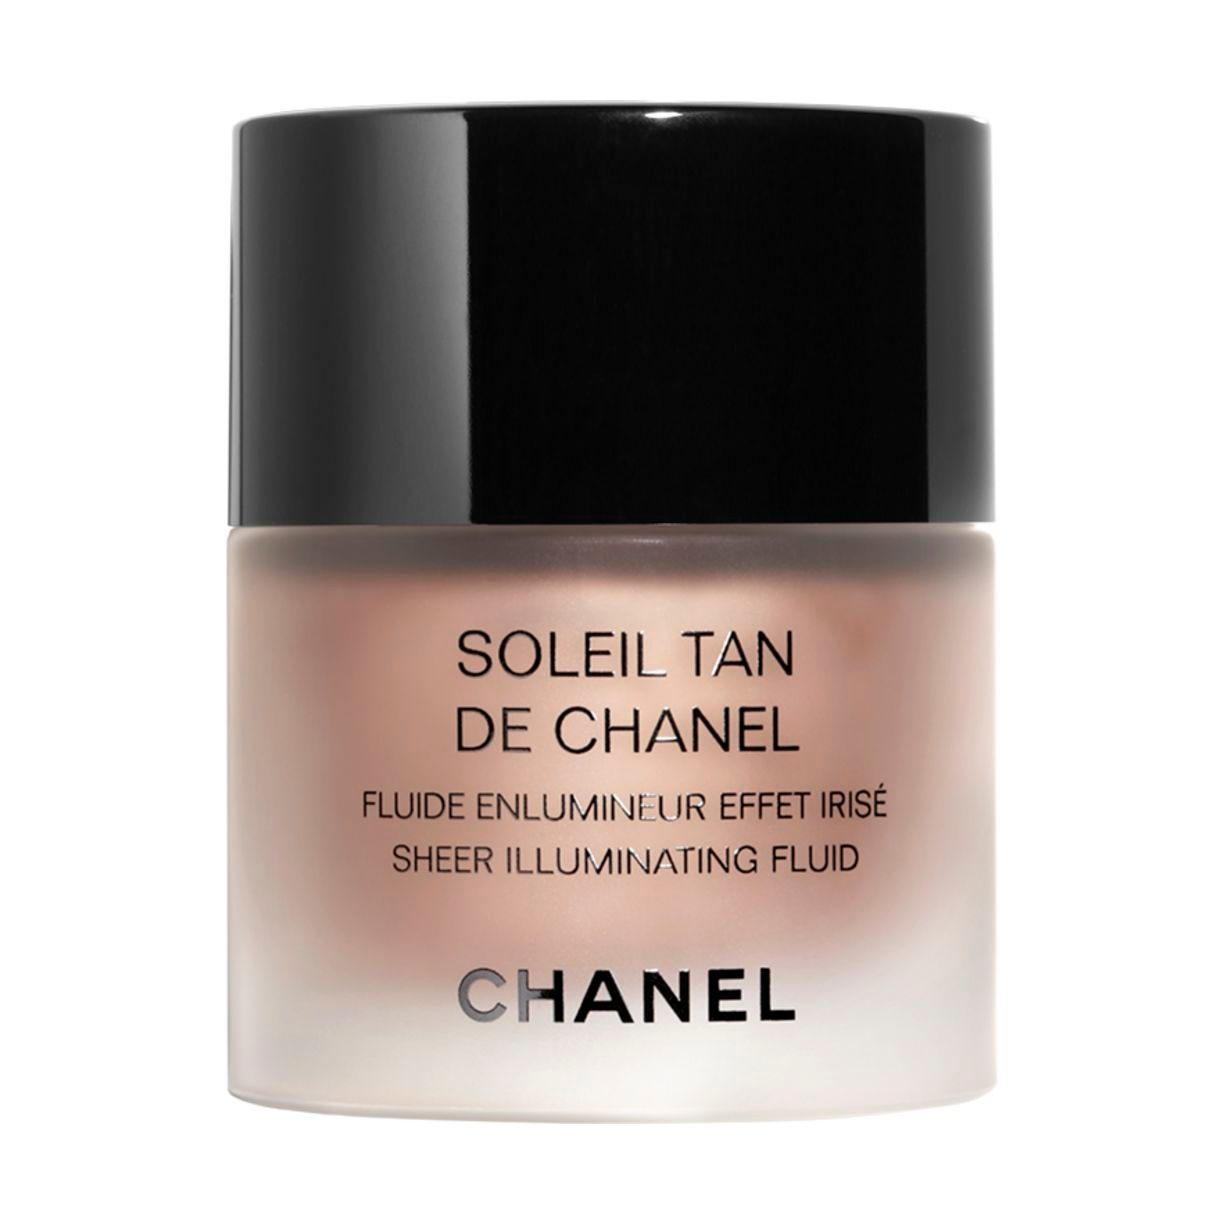 SOLEIL TAN DE CHANEL SHEER ILLUMINATING FLUID Exclusive at Gateway CHANEL Beauté only